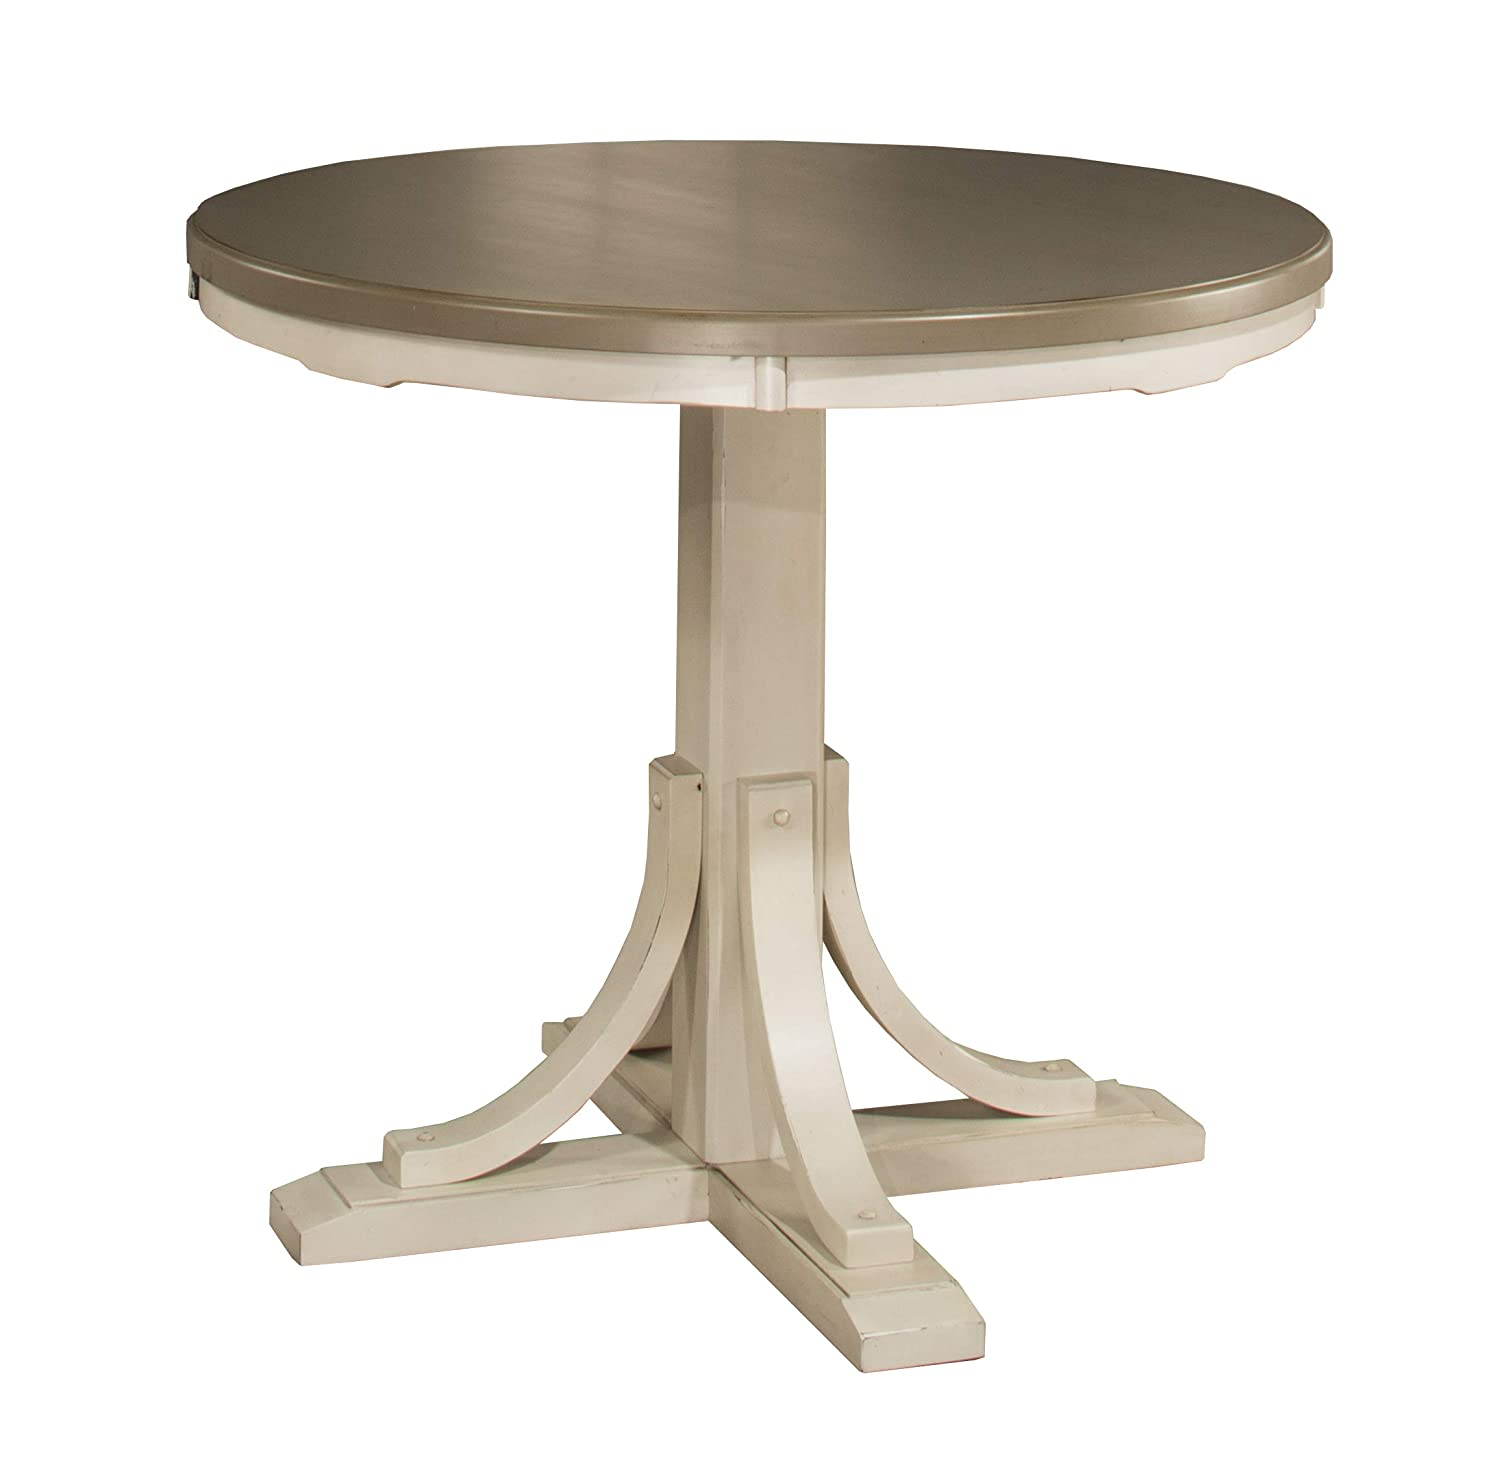 Hillsdale Furniture Counter Height Round Dining Table, Distressed Gray/Sea White